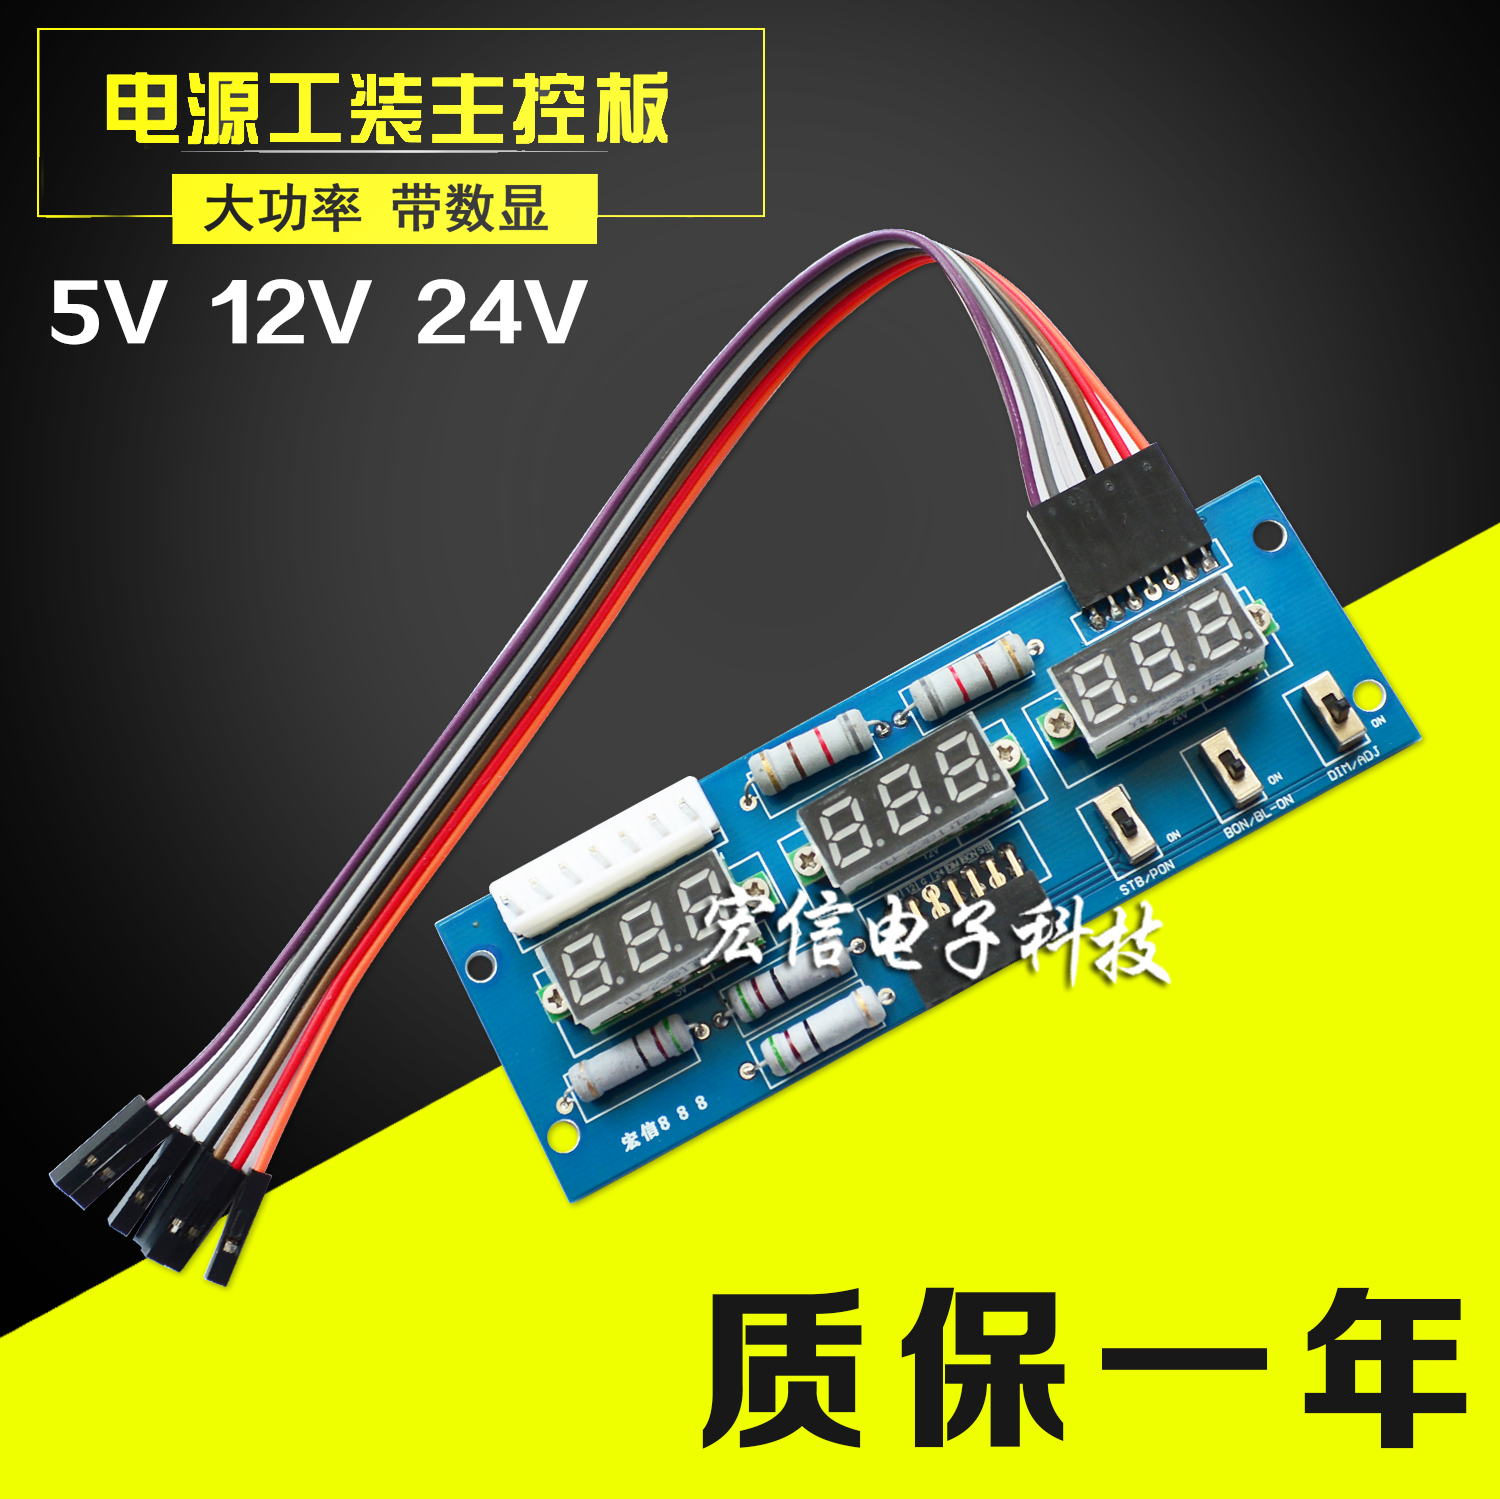 LCD TV Main Board Analog Controller Power Board Detection Tool Maintenance Power Supply Strip Digital Display